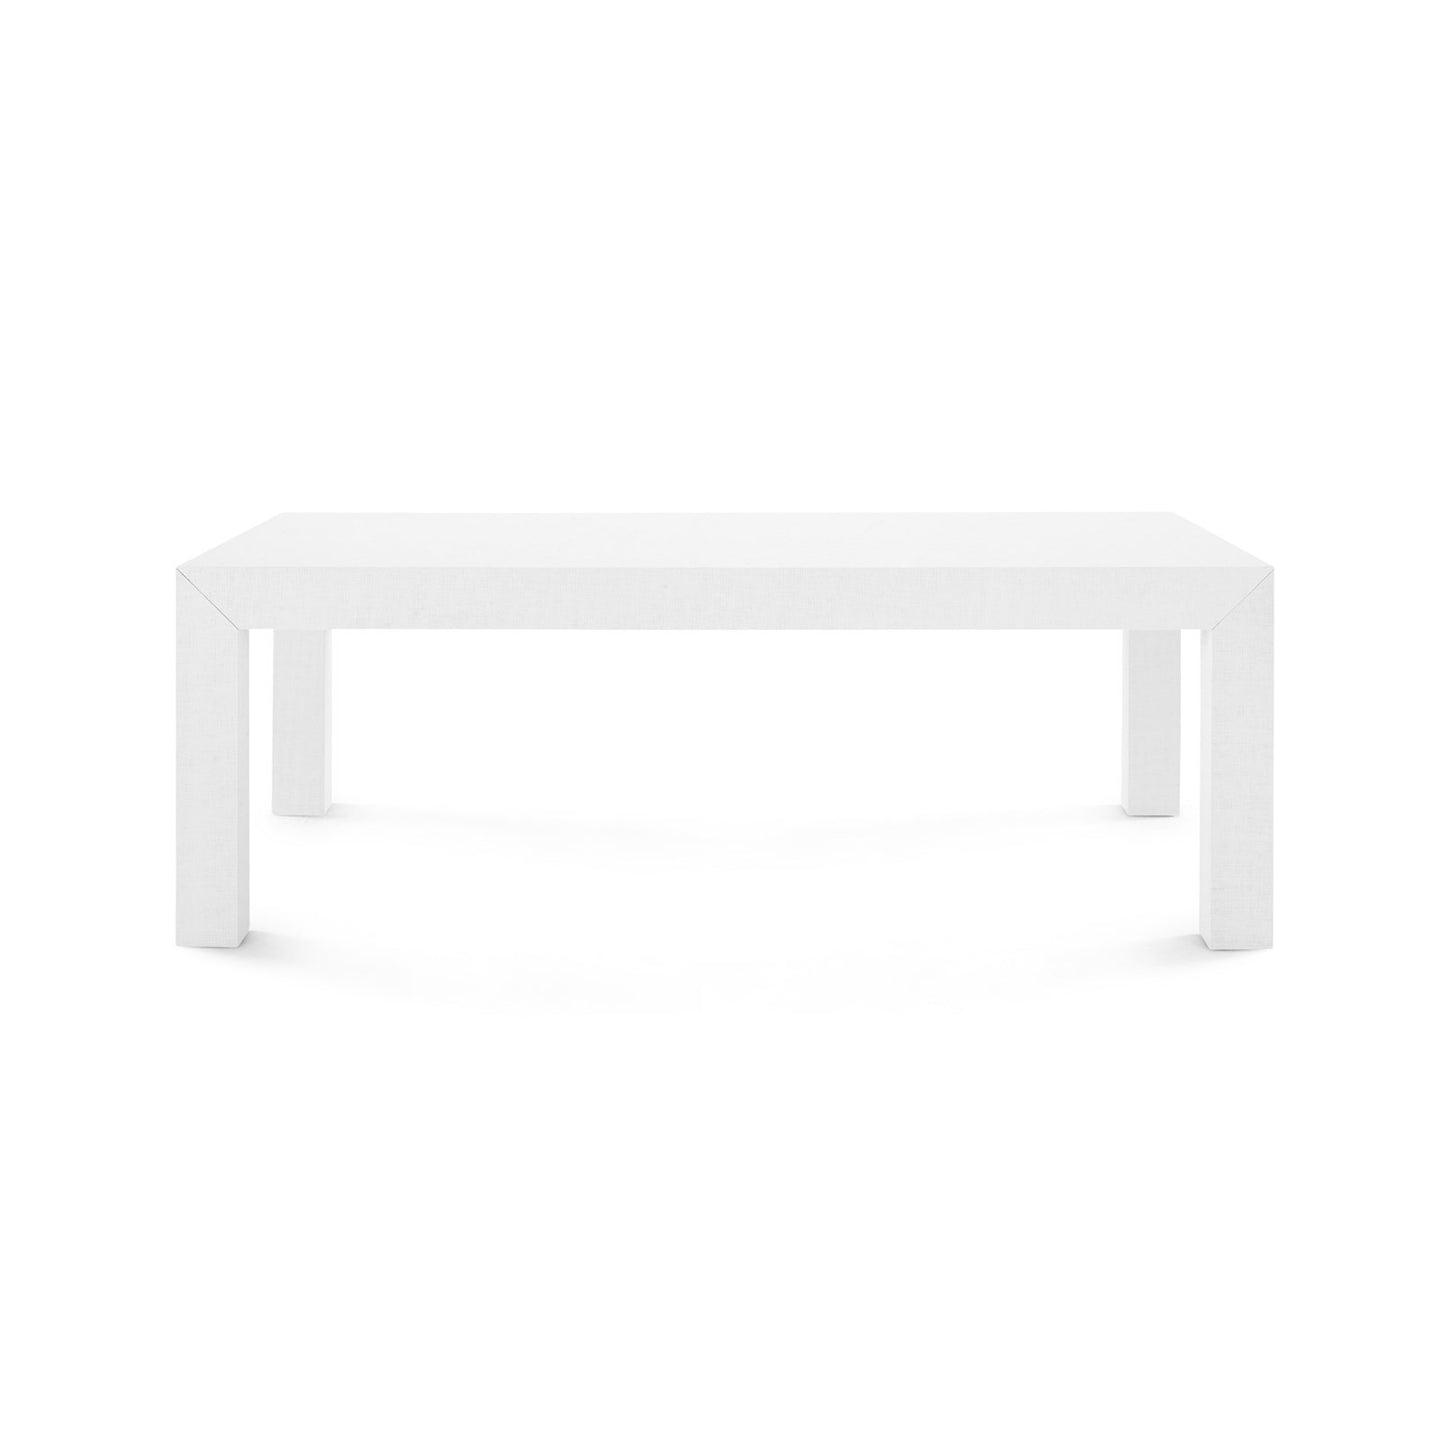 Parson coffee table in navy blue bungalow 5 - Bungalow 5 Parsons Coffee Table White Psn 300 59